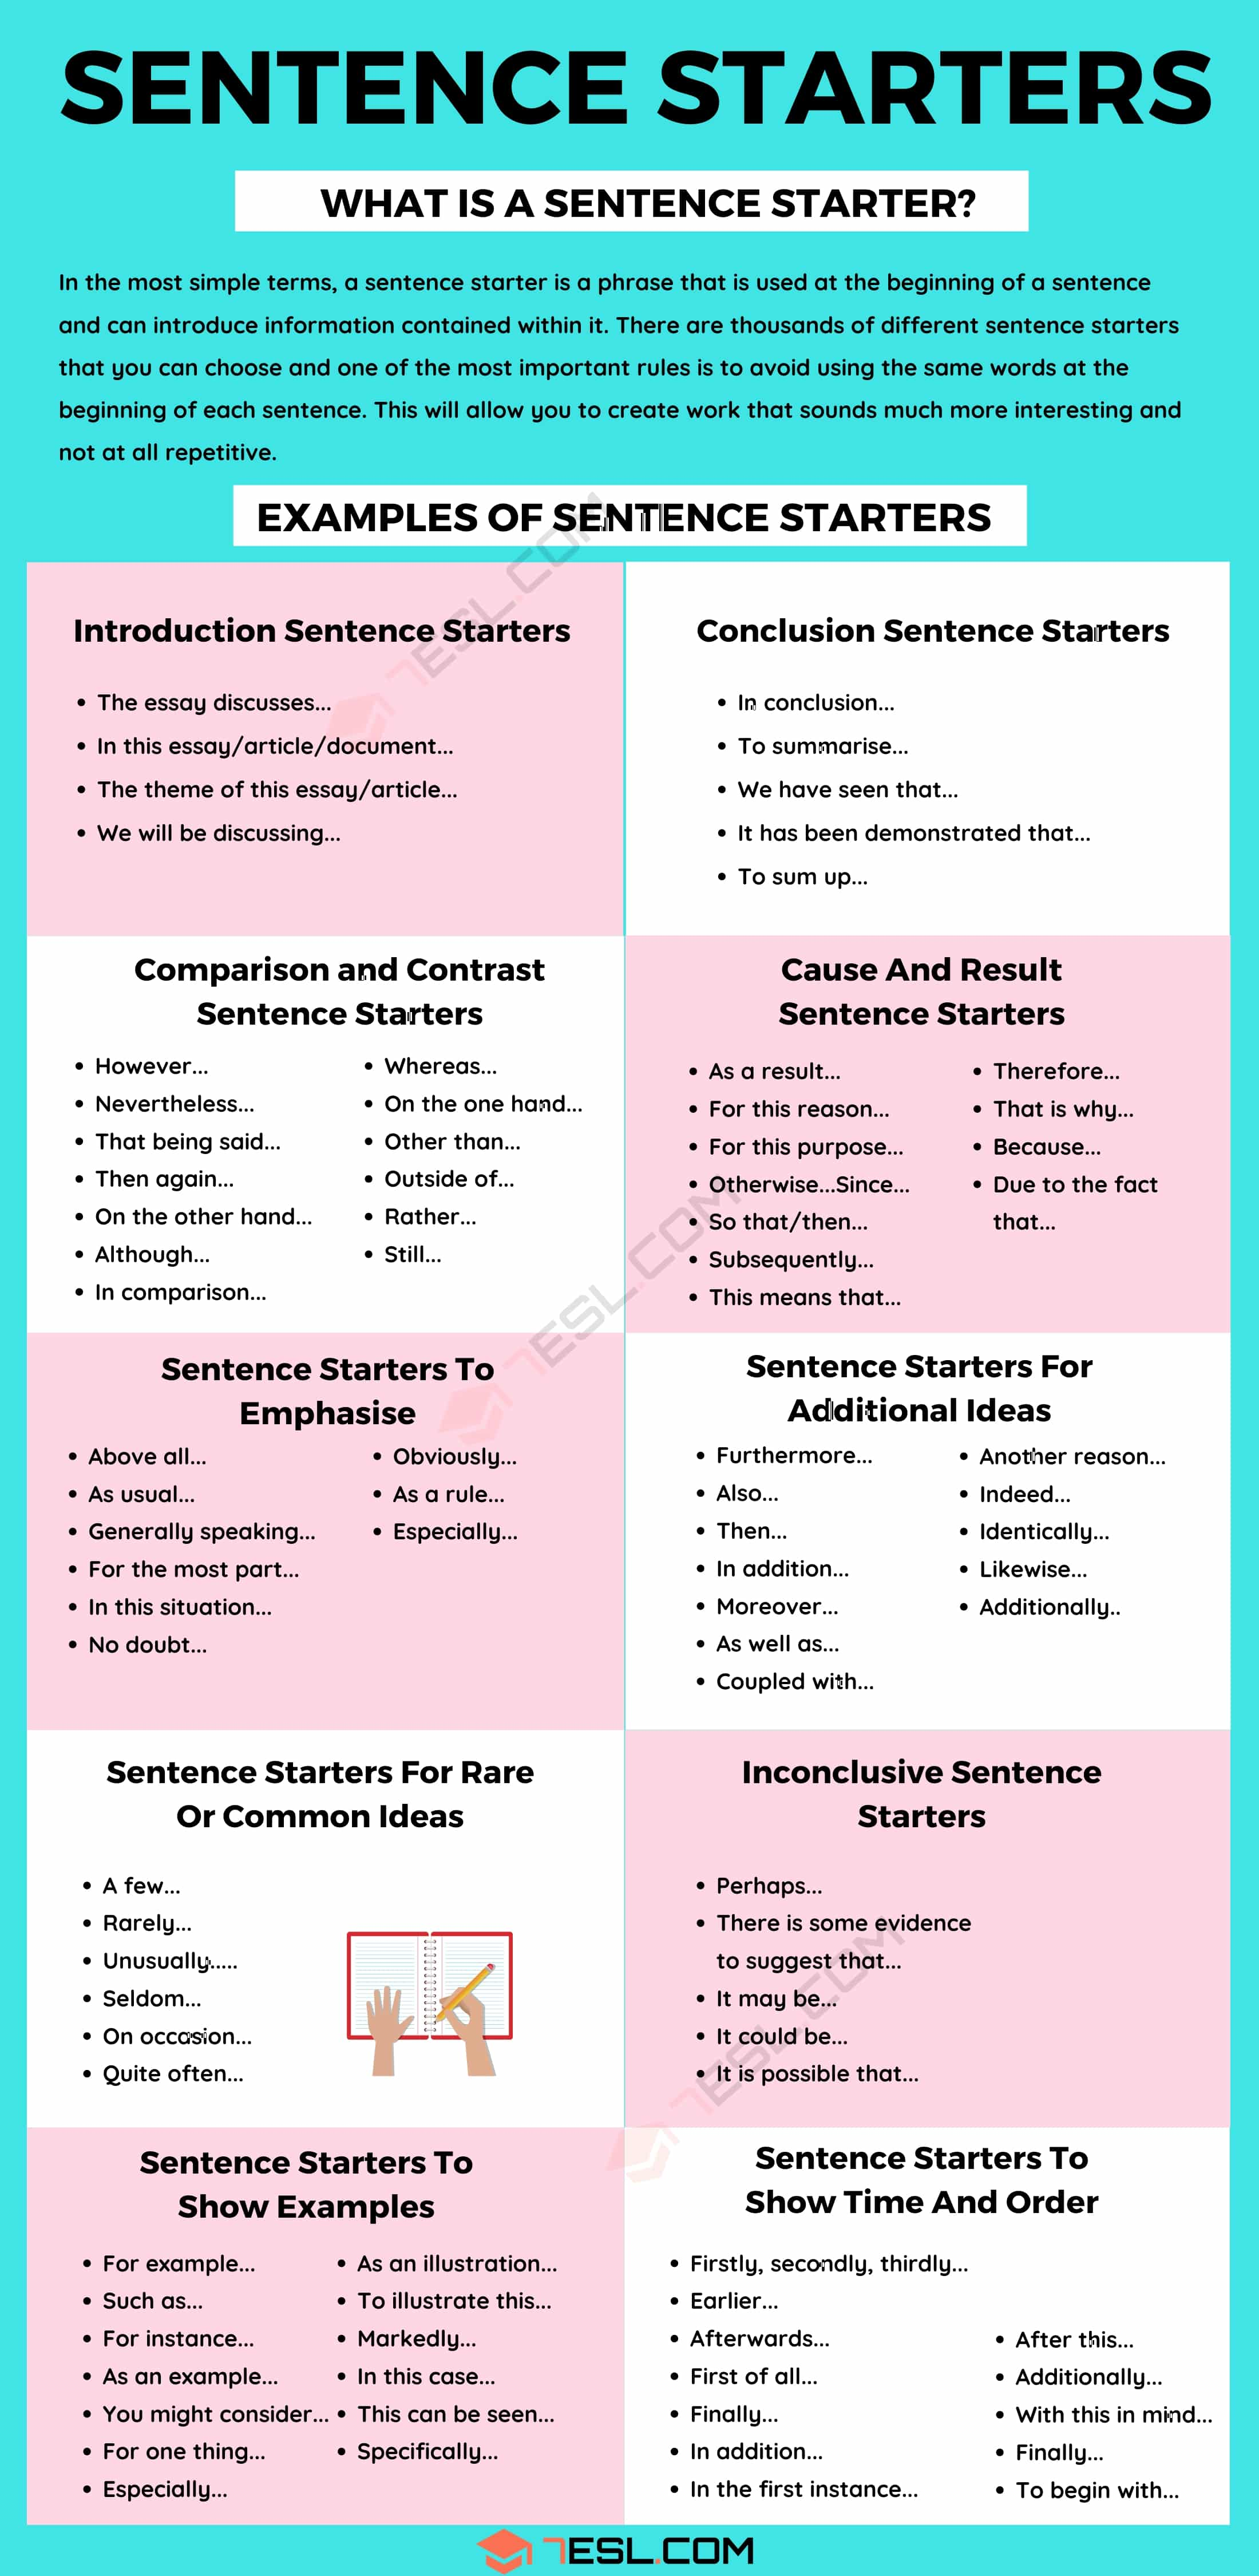 Sentence Starters: Useful Words and Phrases to Use As Sentence Starters For Writing Essay